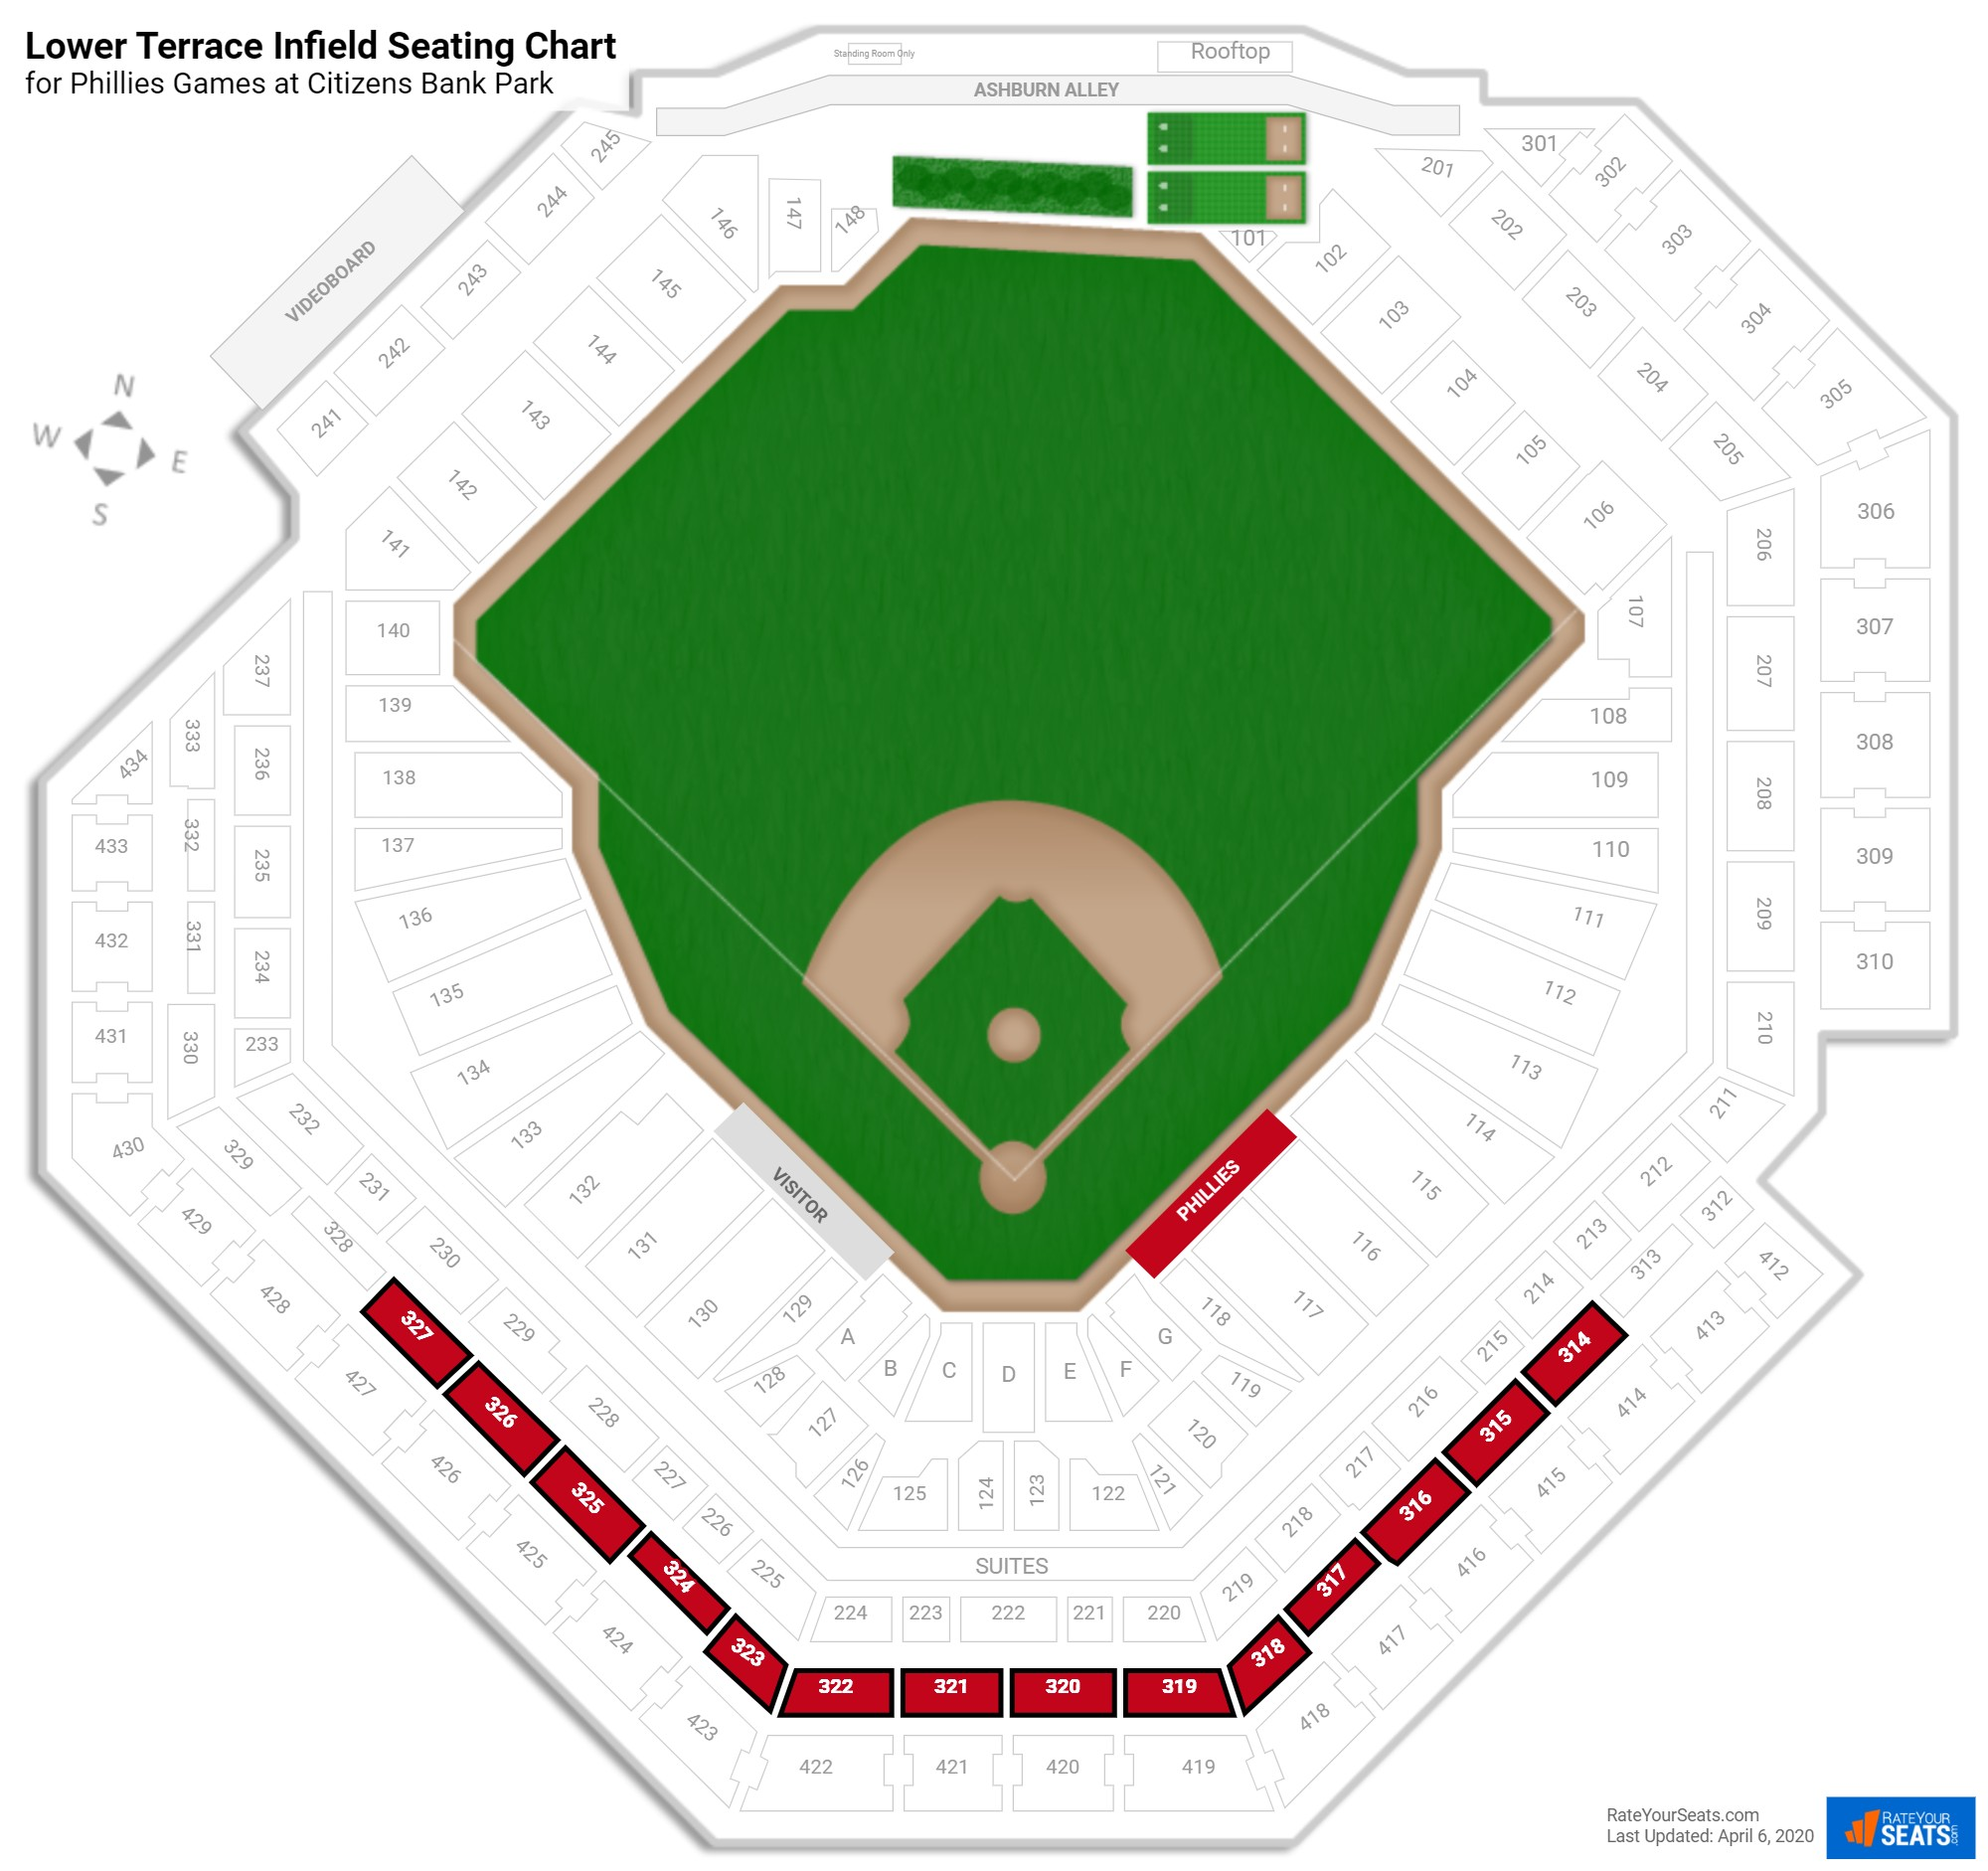 Citizens Bank Park Lower Terrace Infield seating chart